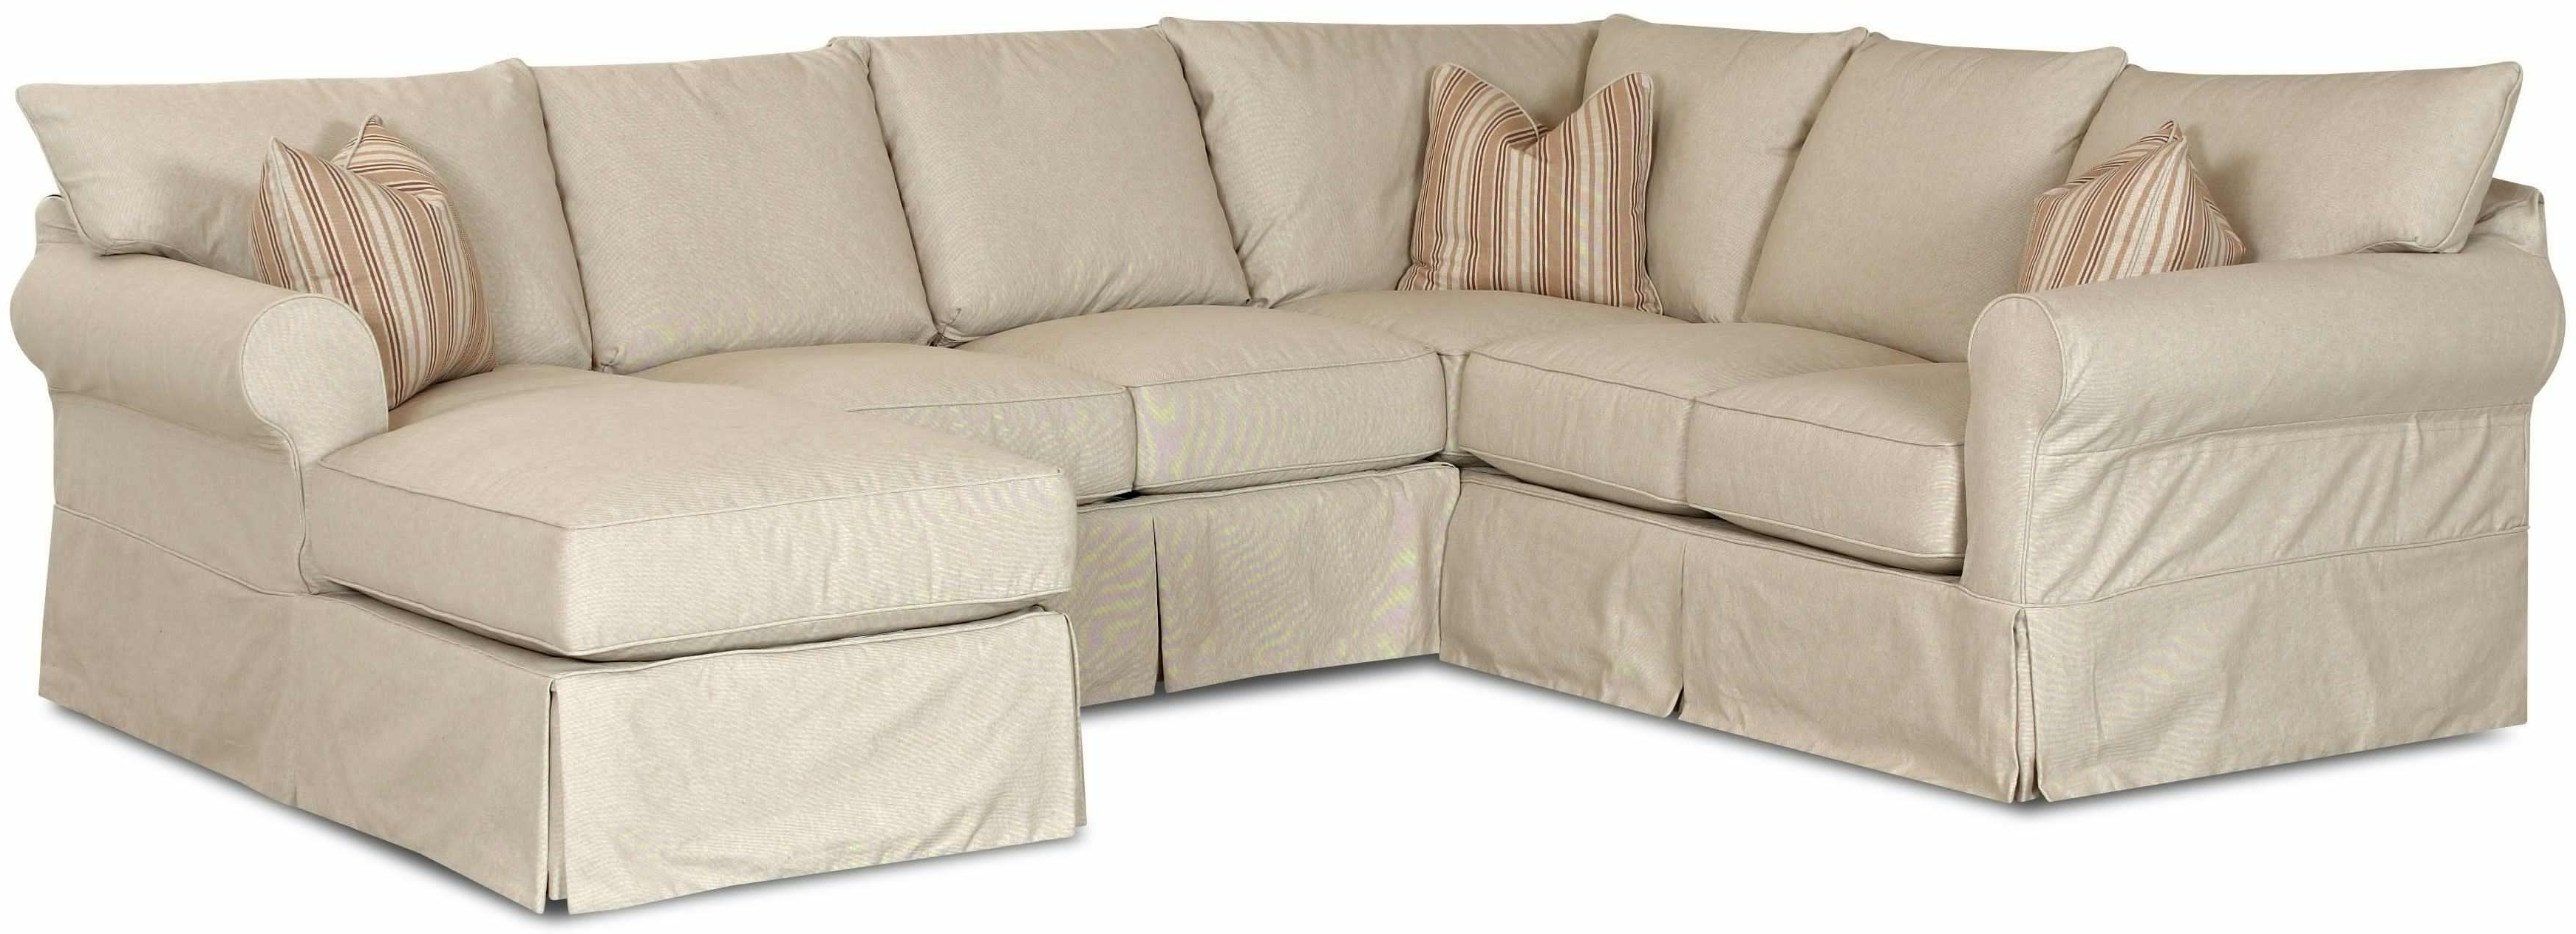 Favorite Slipcover Sectional Sofas With Chaise Intended For Sectional Sofa Design: Slipcovered Sectional Sofa Chaise Reviews (View 6 of 15)